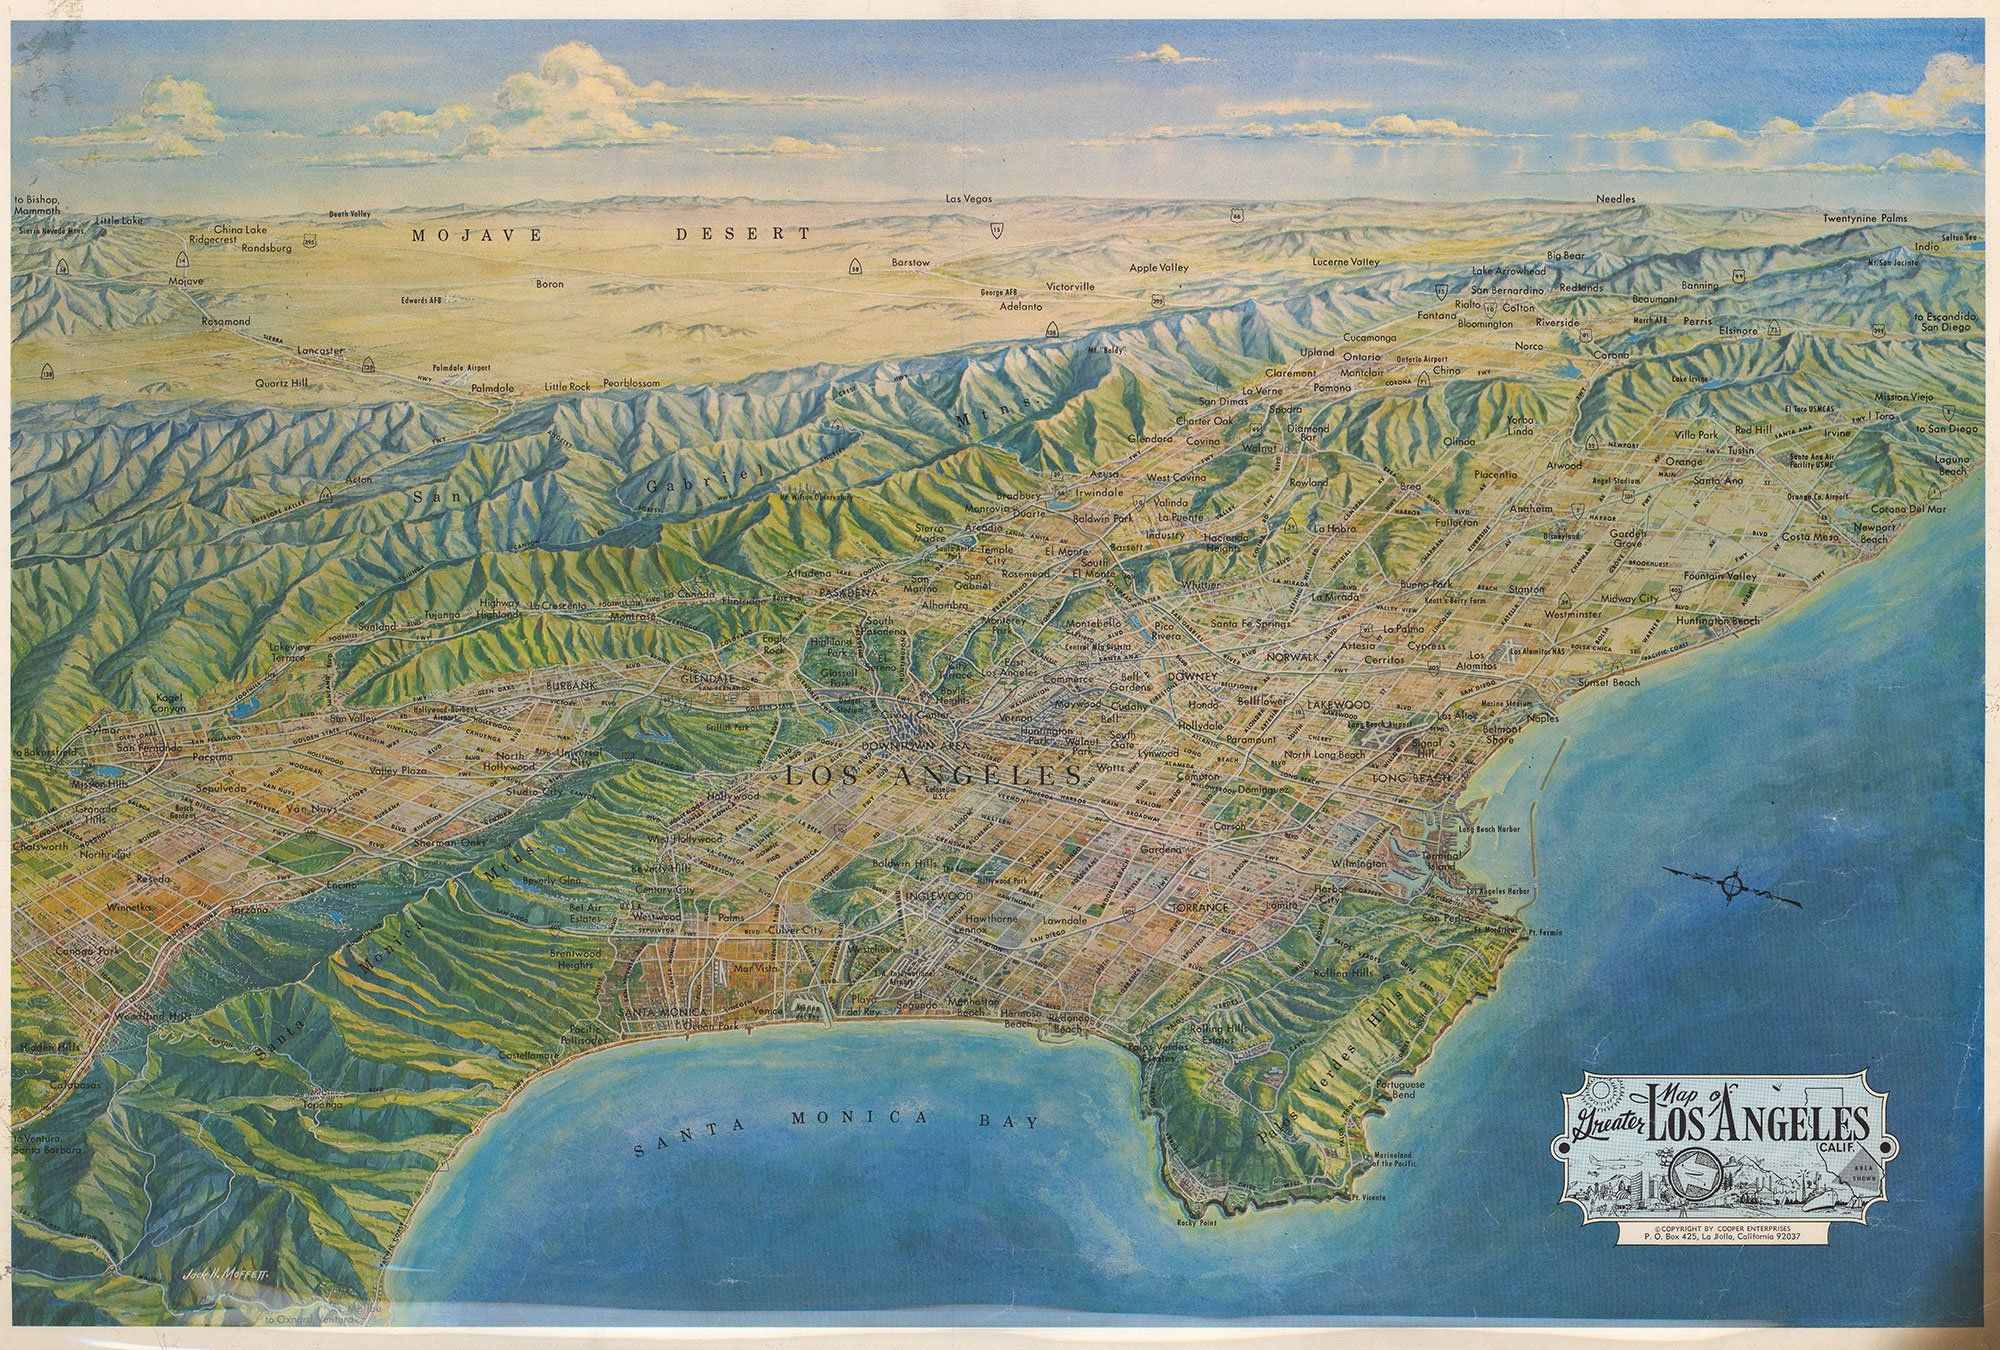 Map Of Poitiers%0A This whopper of a map gives a sense of that scale  stretching from Malibu  to Laguna  from the Salton Sea to Sylmar  from the Mojave to the Palos Ve u